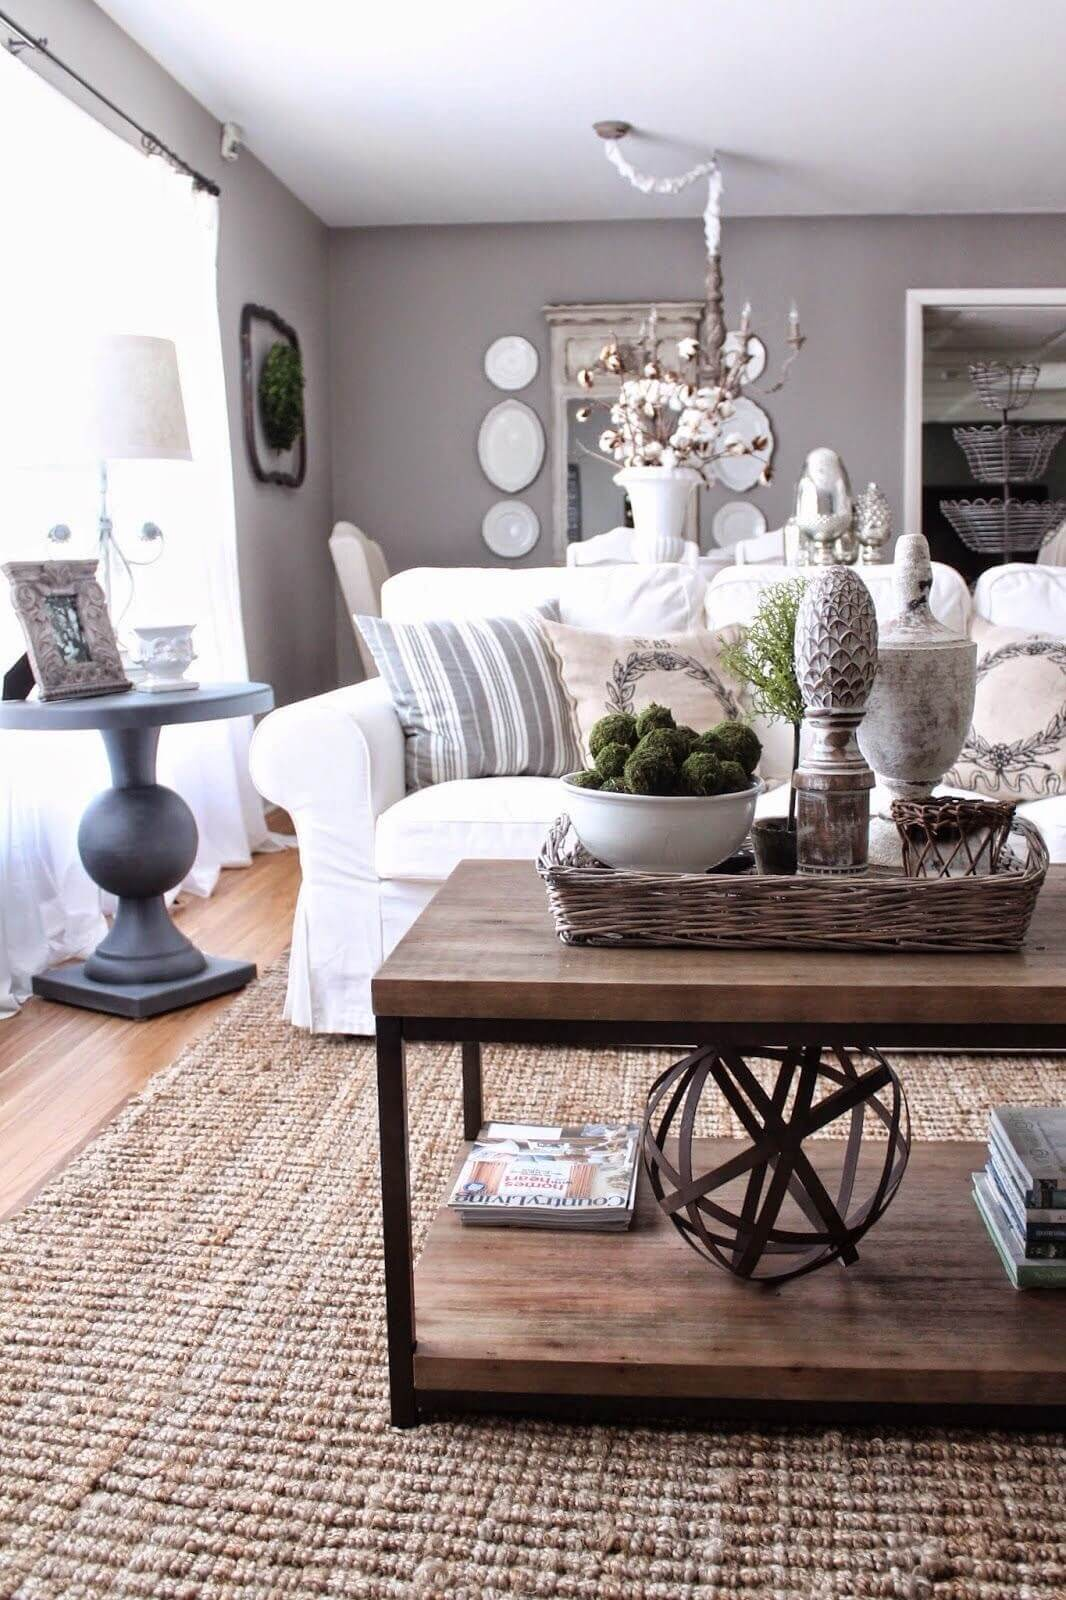 best coffee table decorating ideas and designs for homebnc living room accent double decker display geometric art natural accents white marble top side large farmhouse home